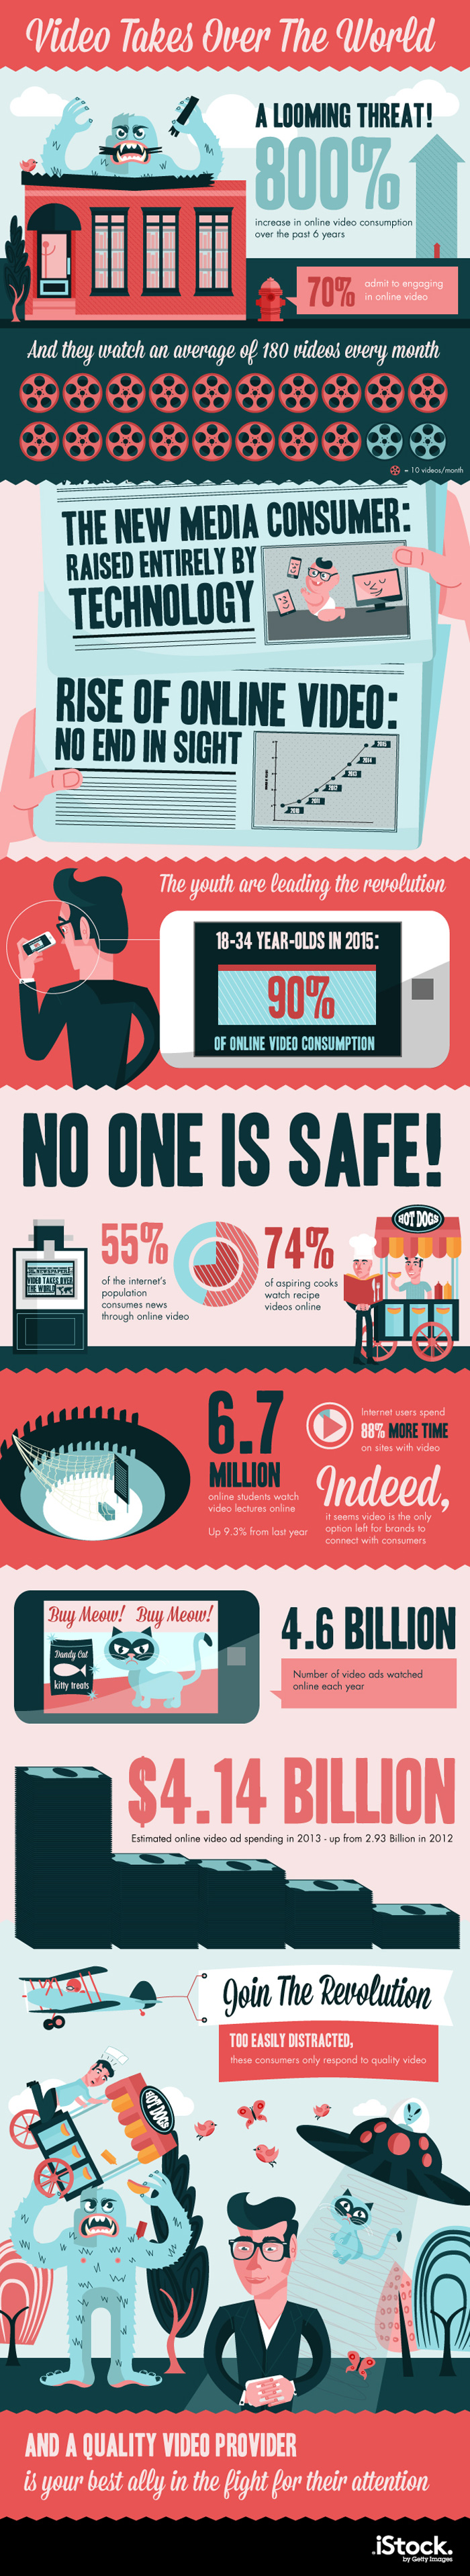 Video Takes Over The World [Infographic]